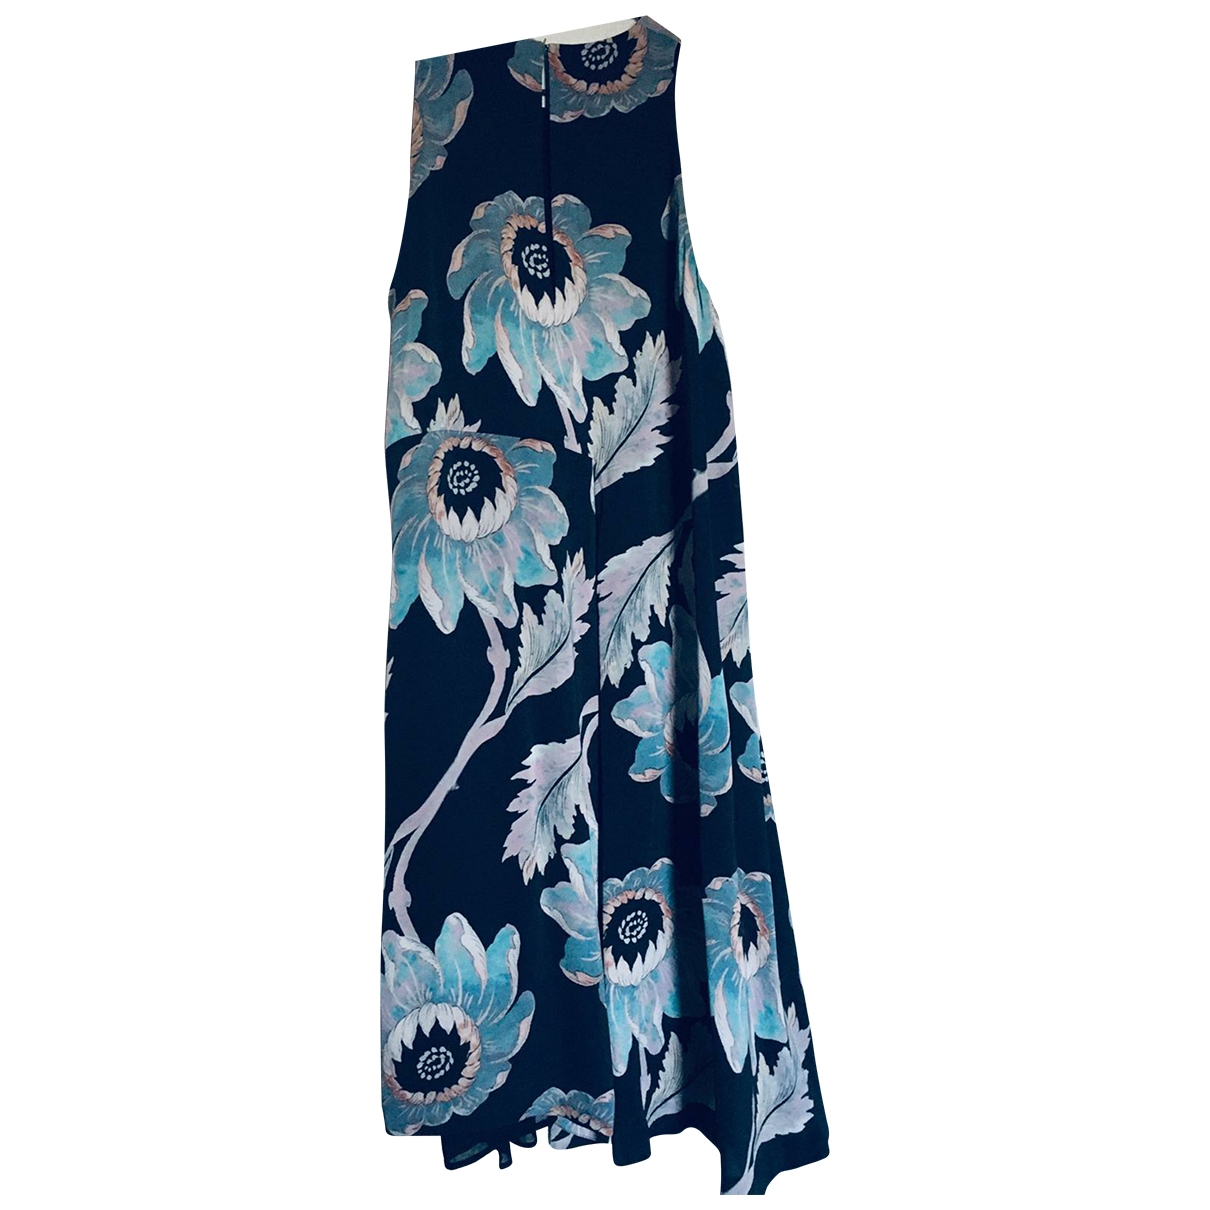 Whistles \N Kleid in  Blau Polyester